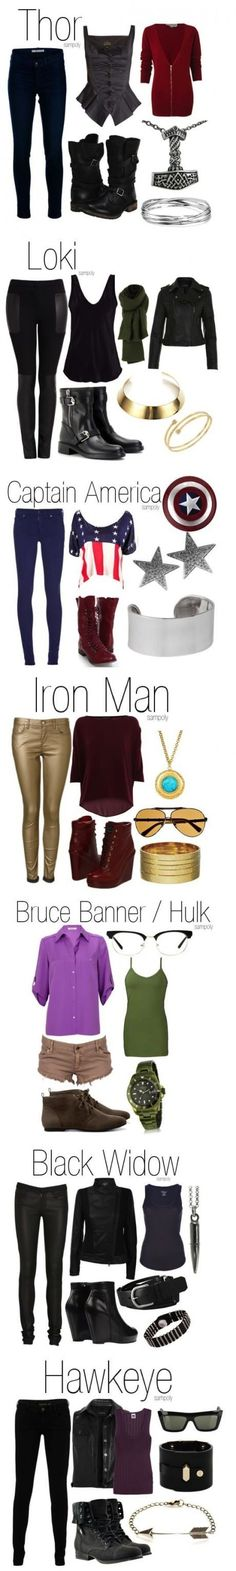 Avengers fashion.    I would wear any of theses outfits. ...except for some of the shoes.